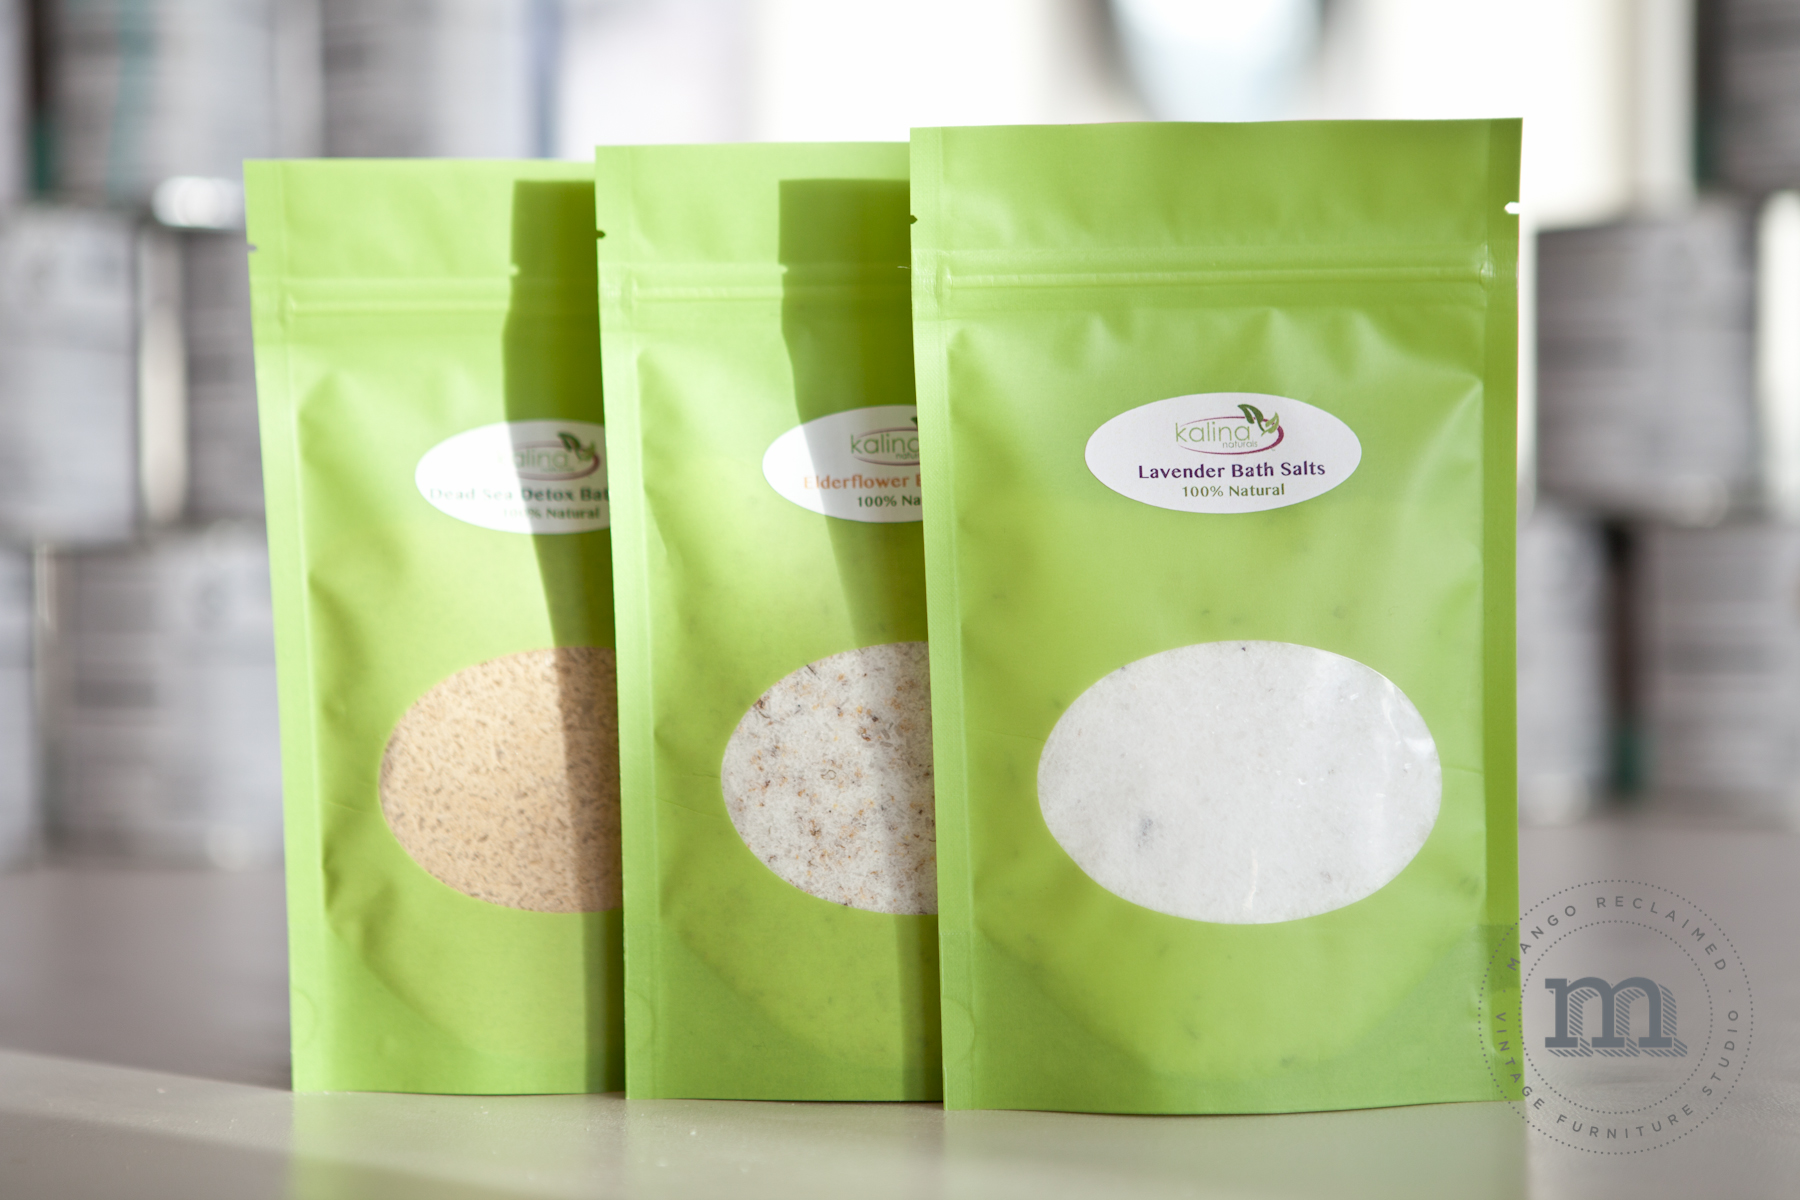 100% natural bath salts are $8/bag.